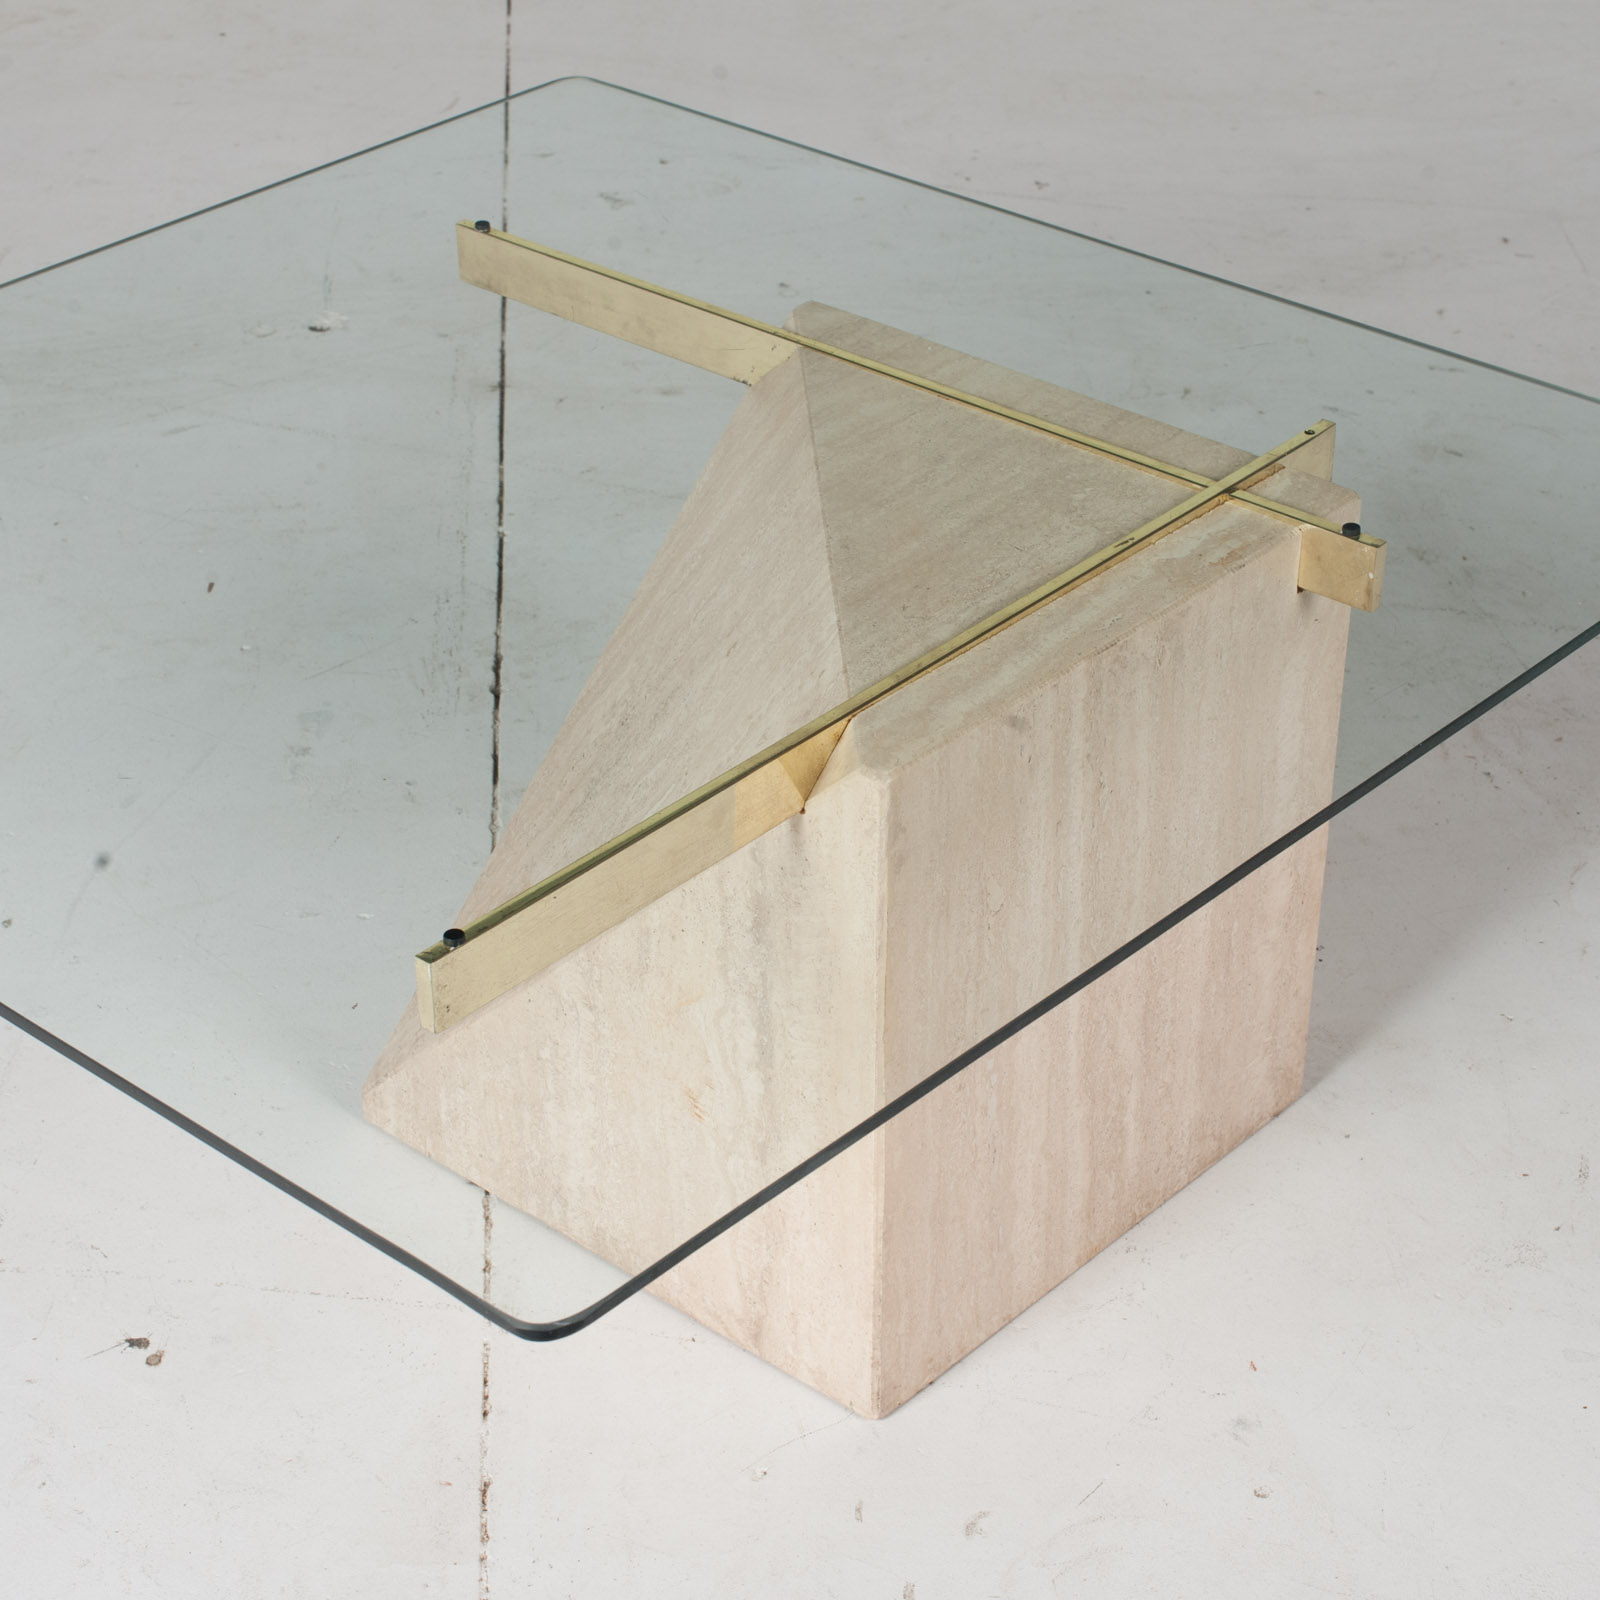 Coffee Table By Artedi In Travertine, Cantilevered Glass And Brass, 1970s, Italy8